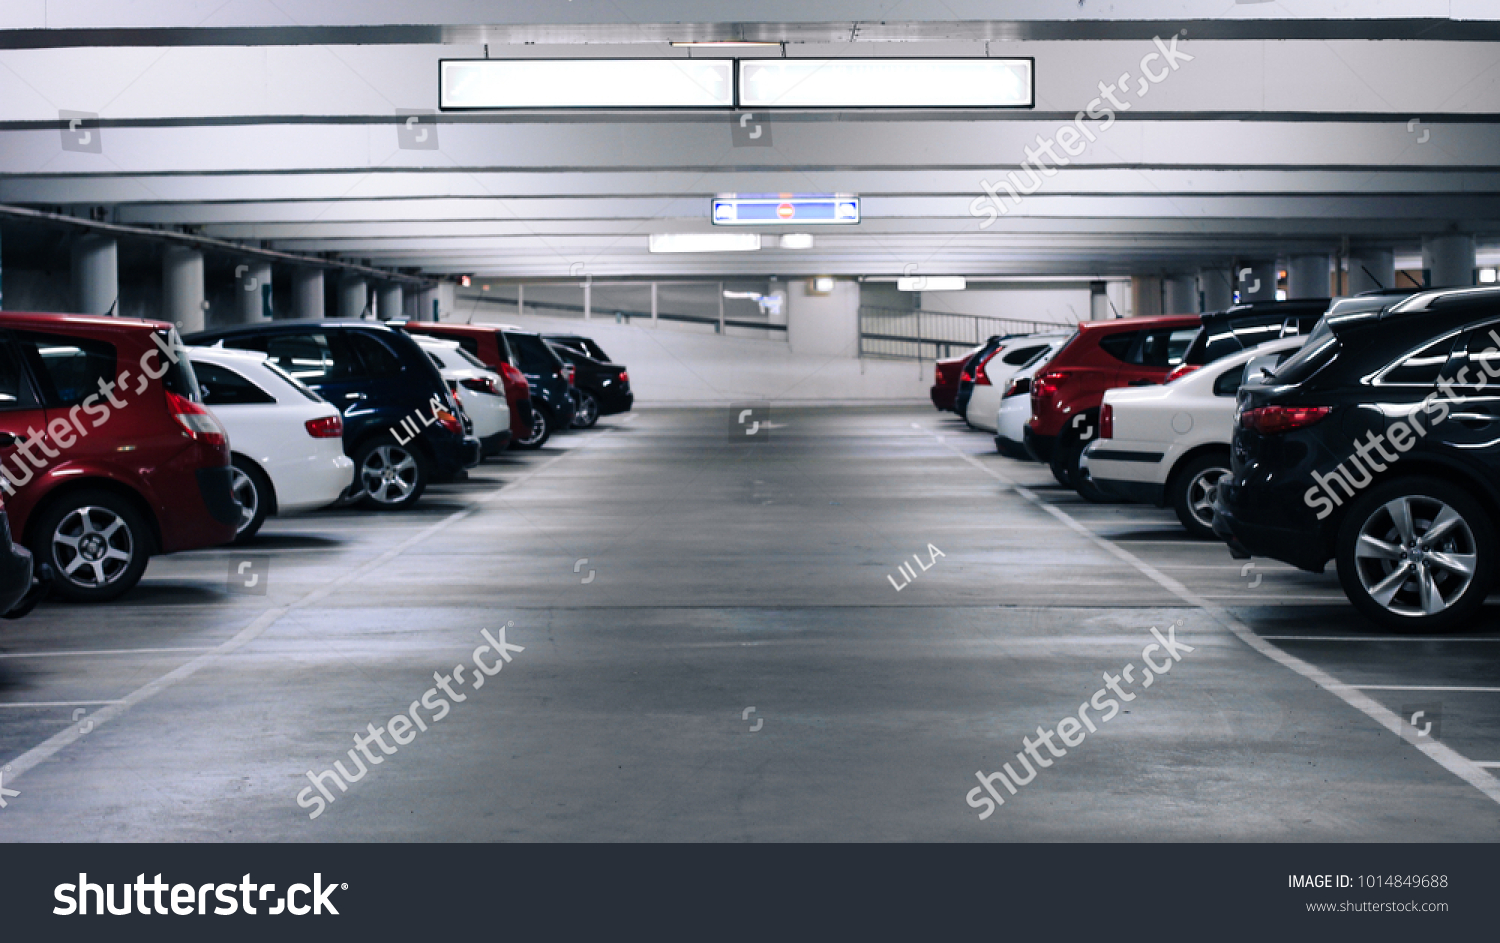 parking cars without people #1014849688